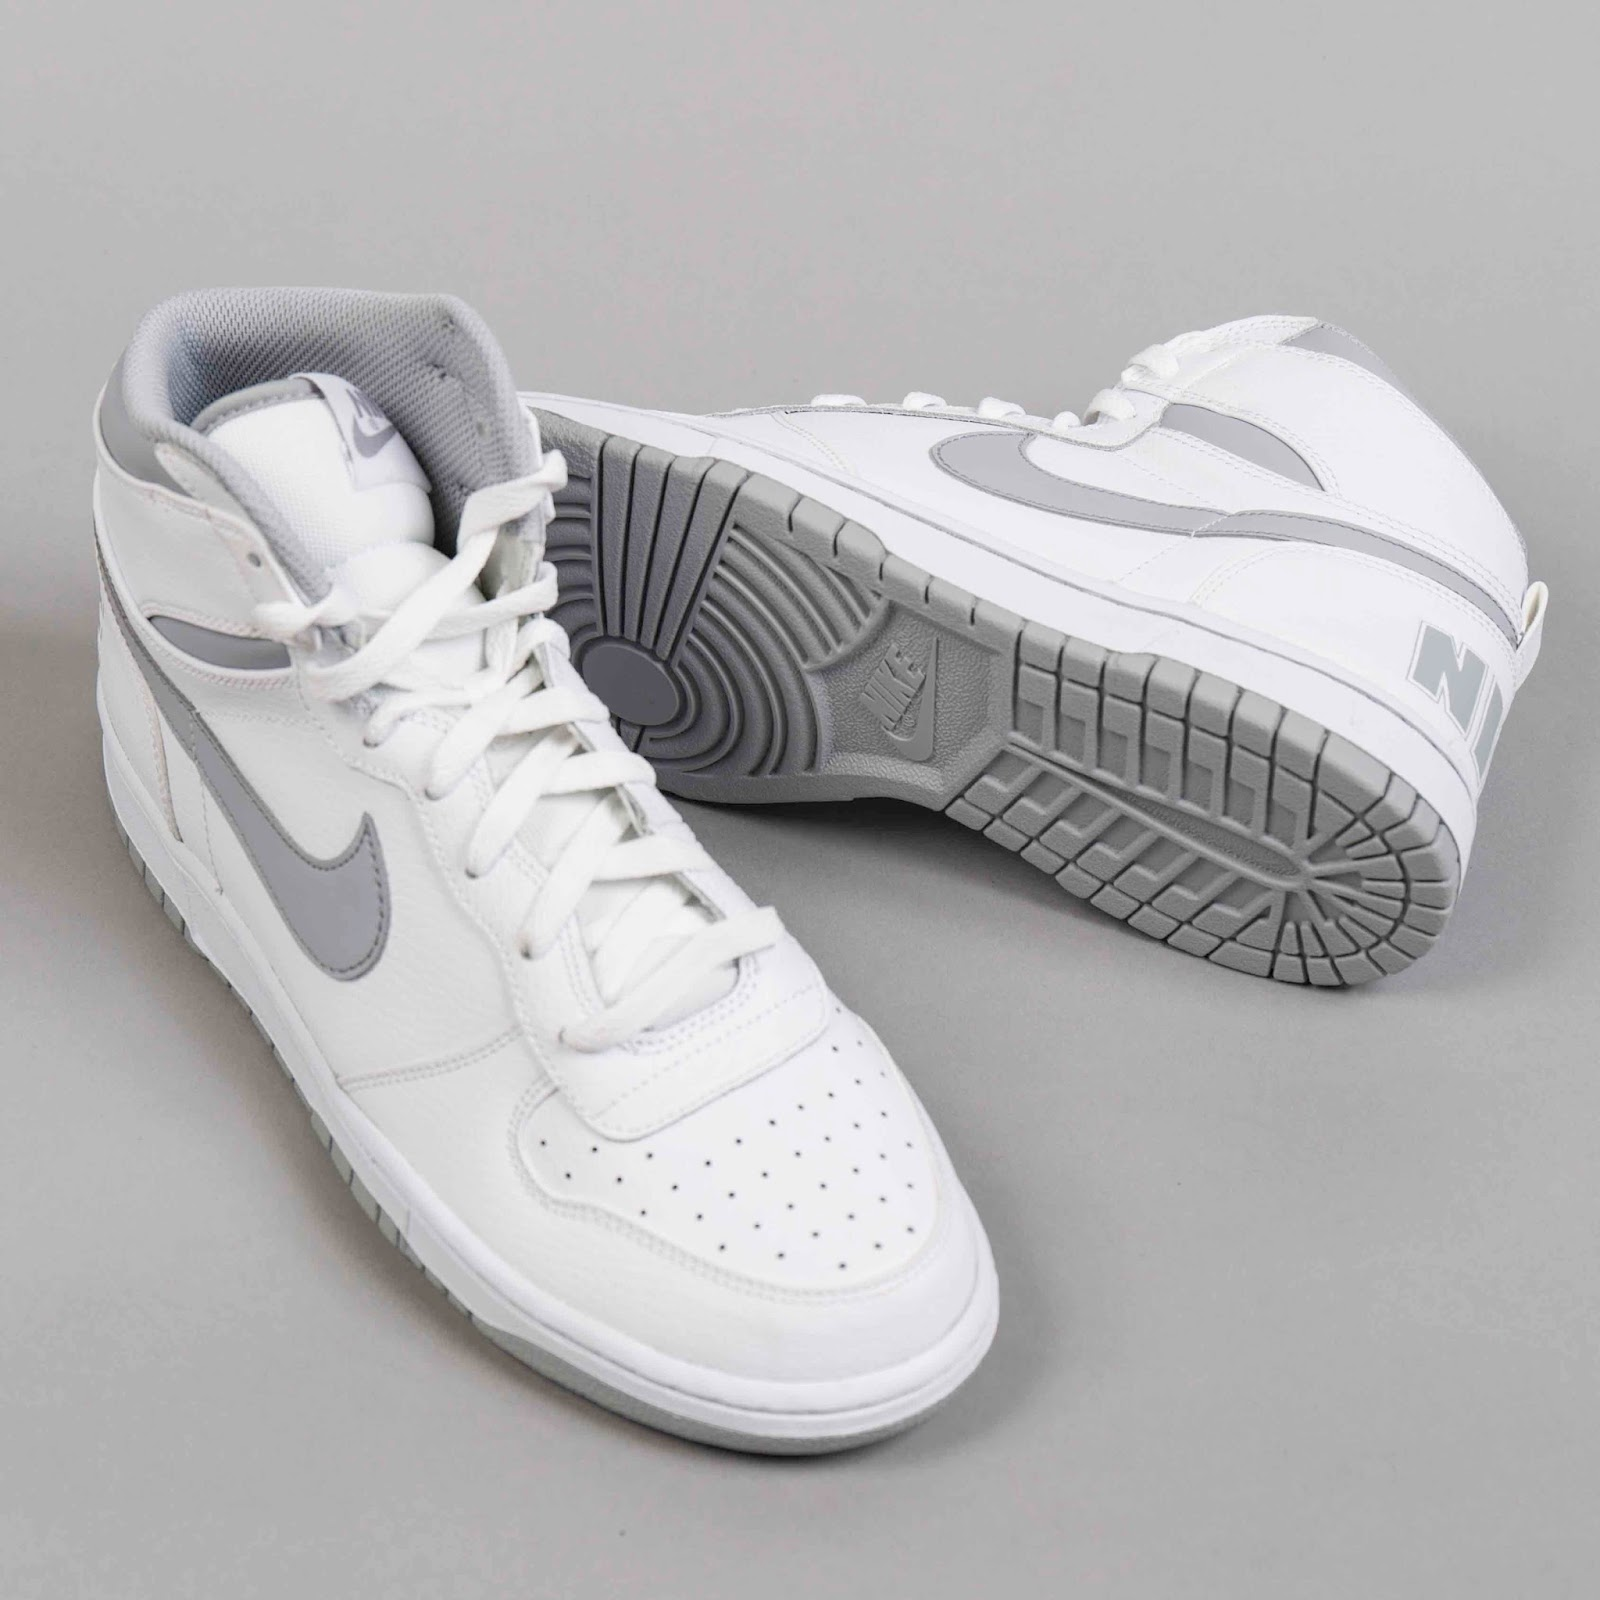 online store fac79 c6e8f In 2009 Nike resurrected the Big Nike High silhouette but with similar high-top  shapes such as the Terminator and the Dunk still thriving the silhouette  was ...